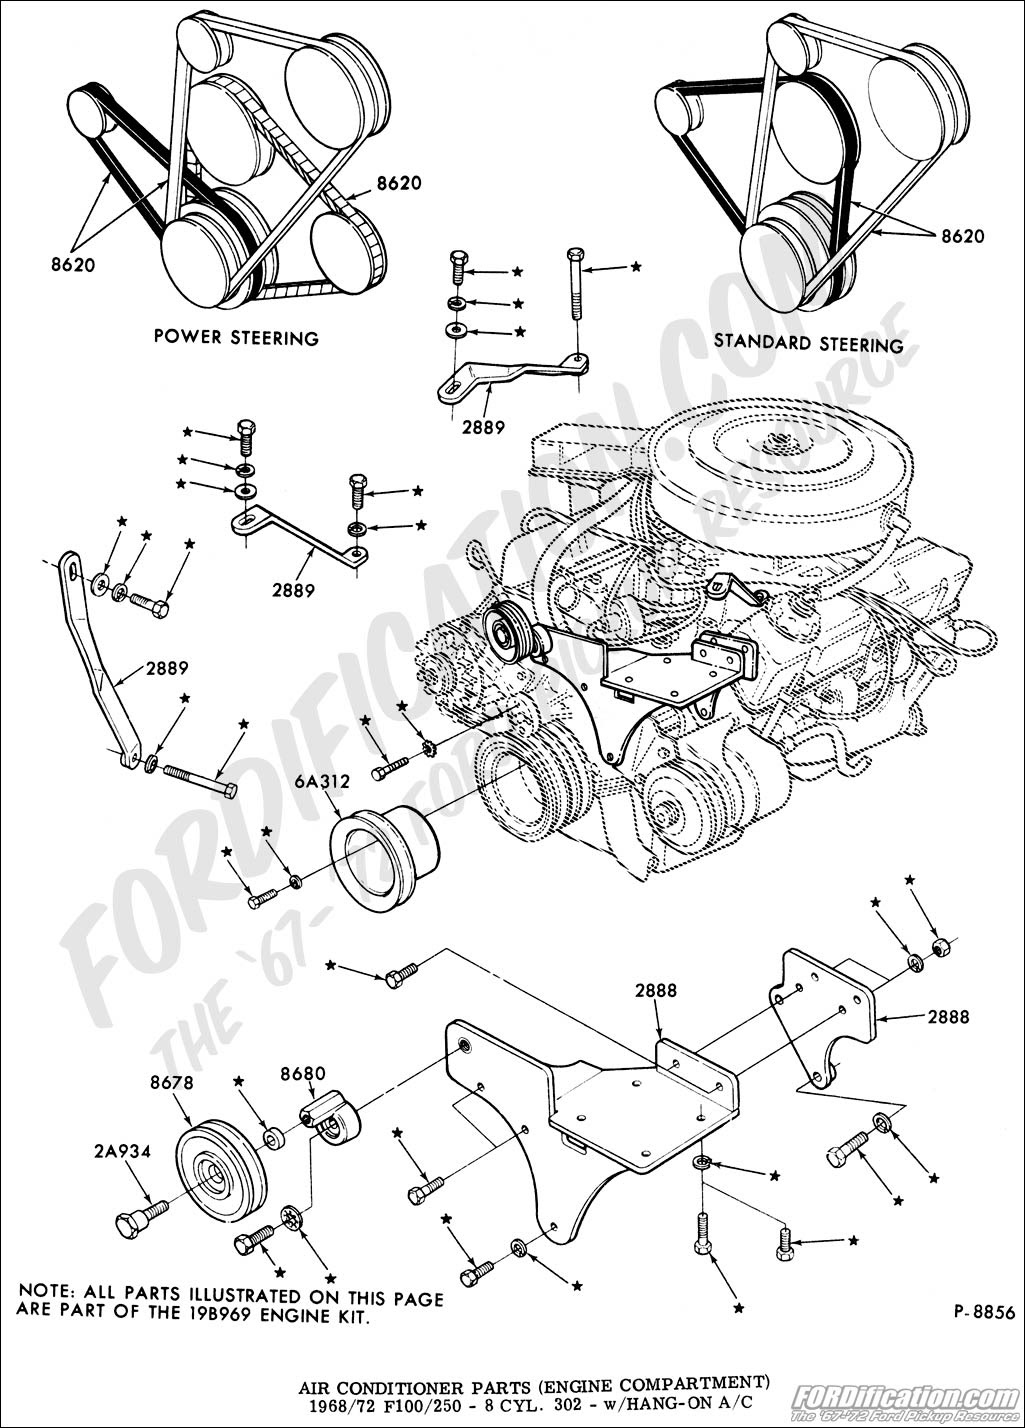 1979 V8 Ford Engine Diagram - Honda Ruckus Wiring Diagram 03 -  maxoncb.tukune.jeanjaures37.fr | 1979 V8 Ford Engine Diagram |  | Wiring Diagram Resource